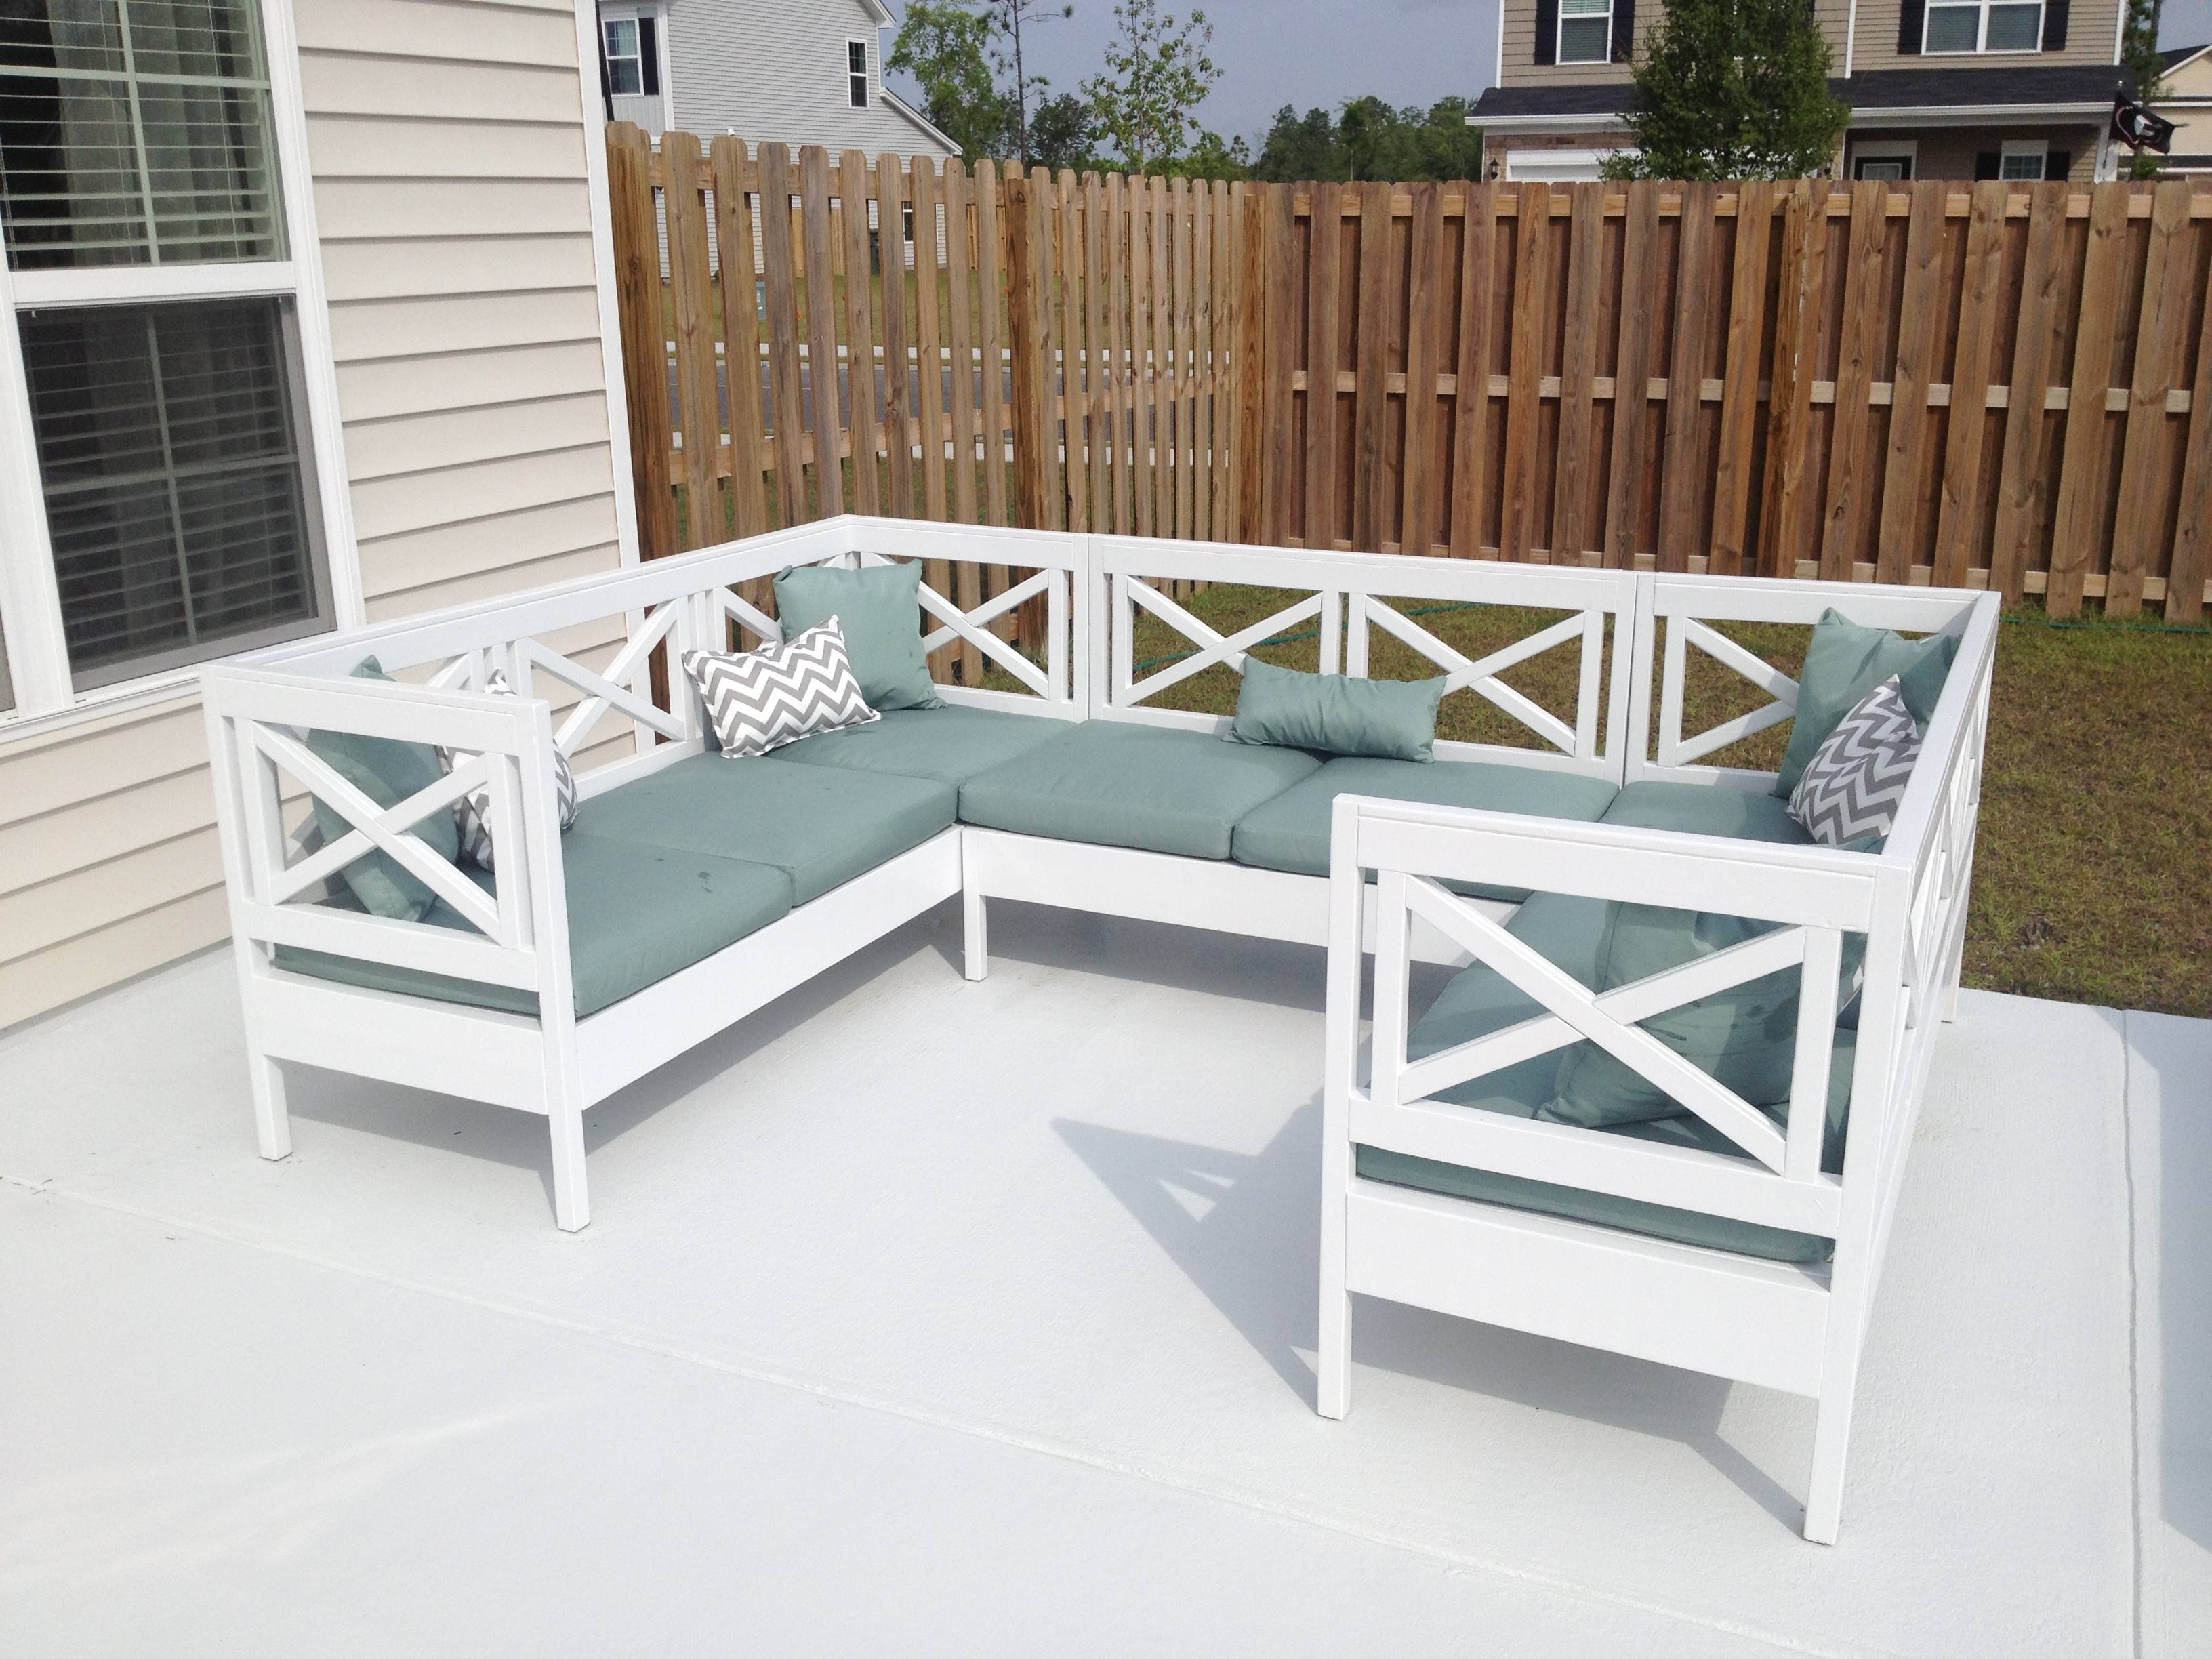 Ana White | Weatherly Outdoor Sectional! - Diy Projects throughout Ana White Outdoor Sectional Sofas (Image 13 of 15)